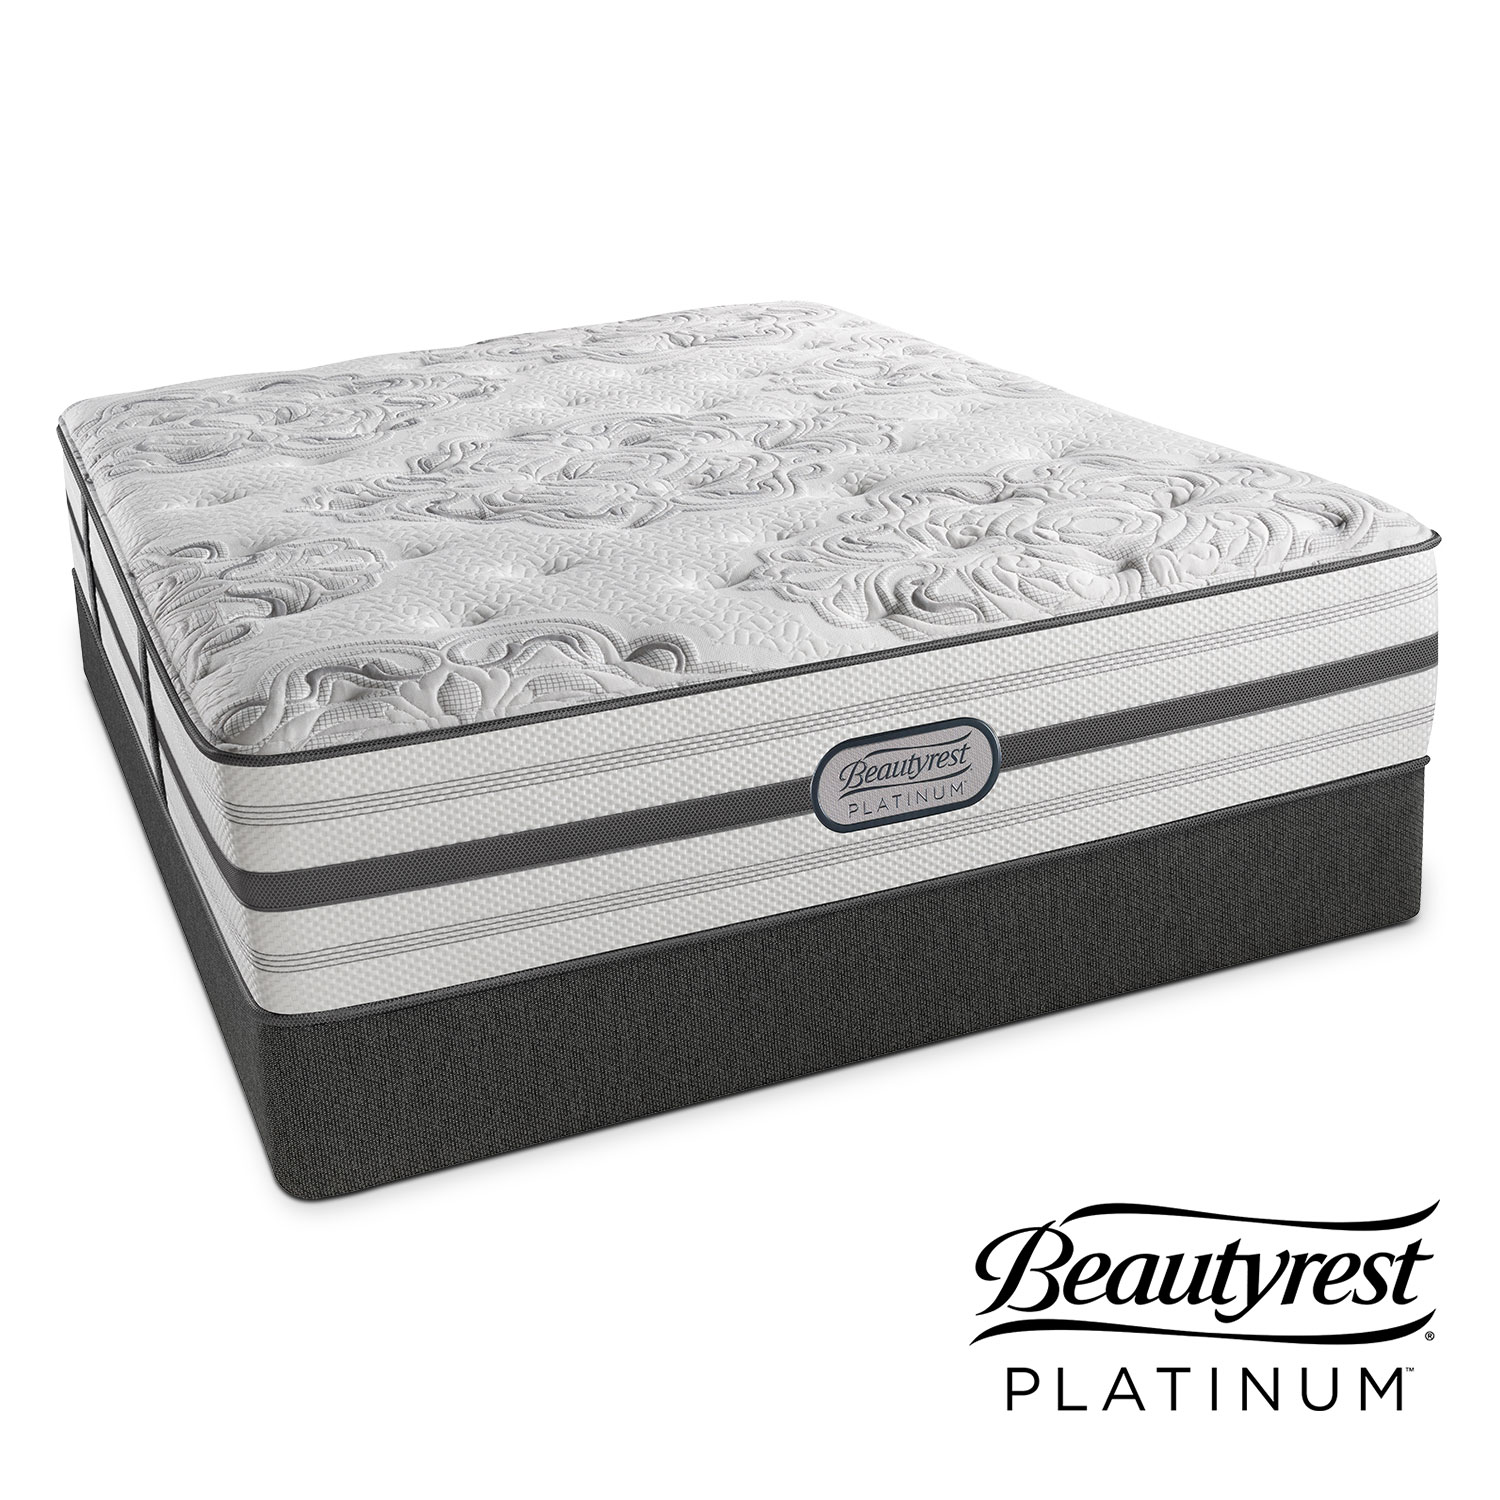 Mattresses and Bedding - Alexandria Luxury Firm Full Mattress and Foundation Set